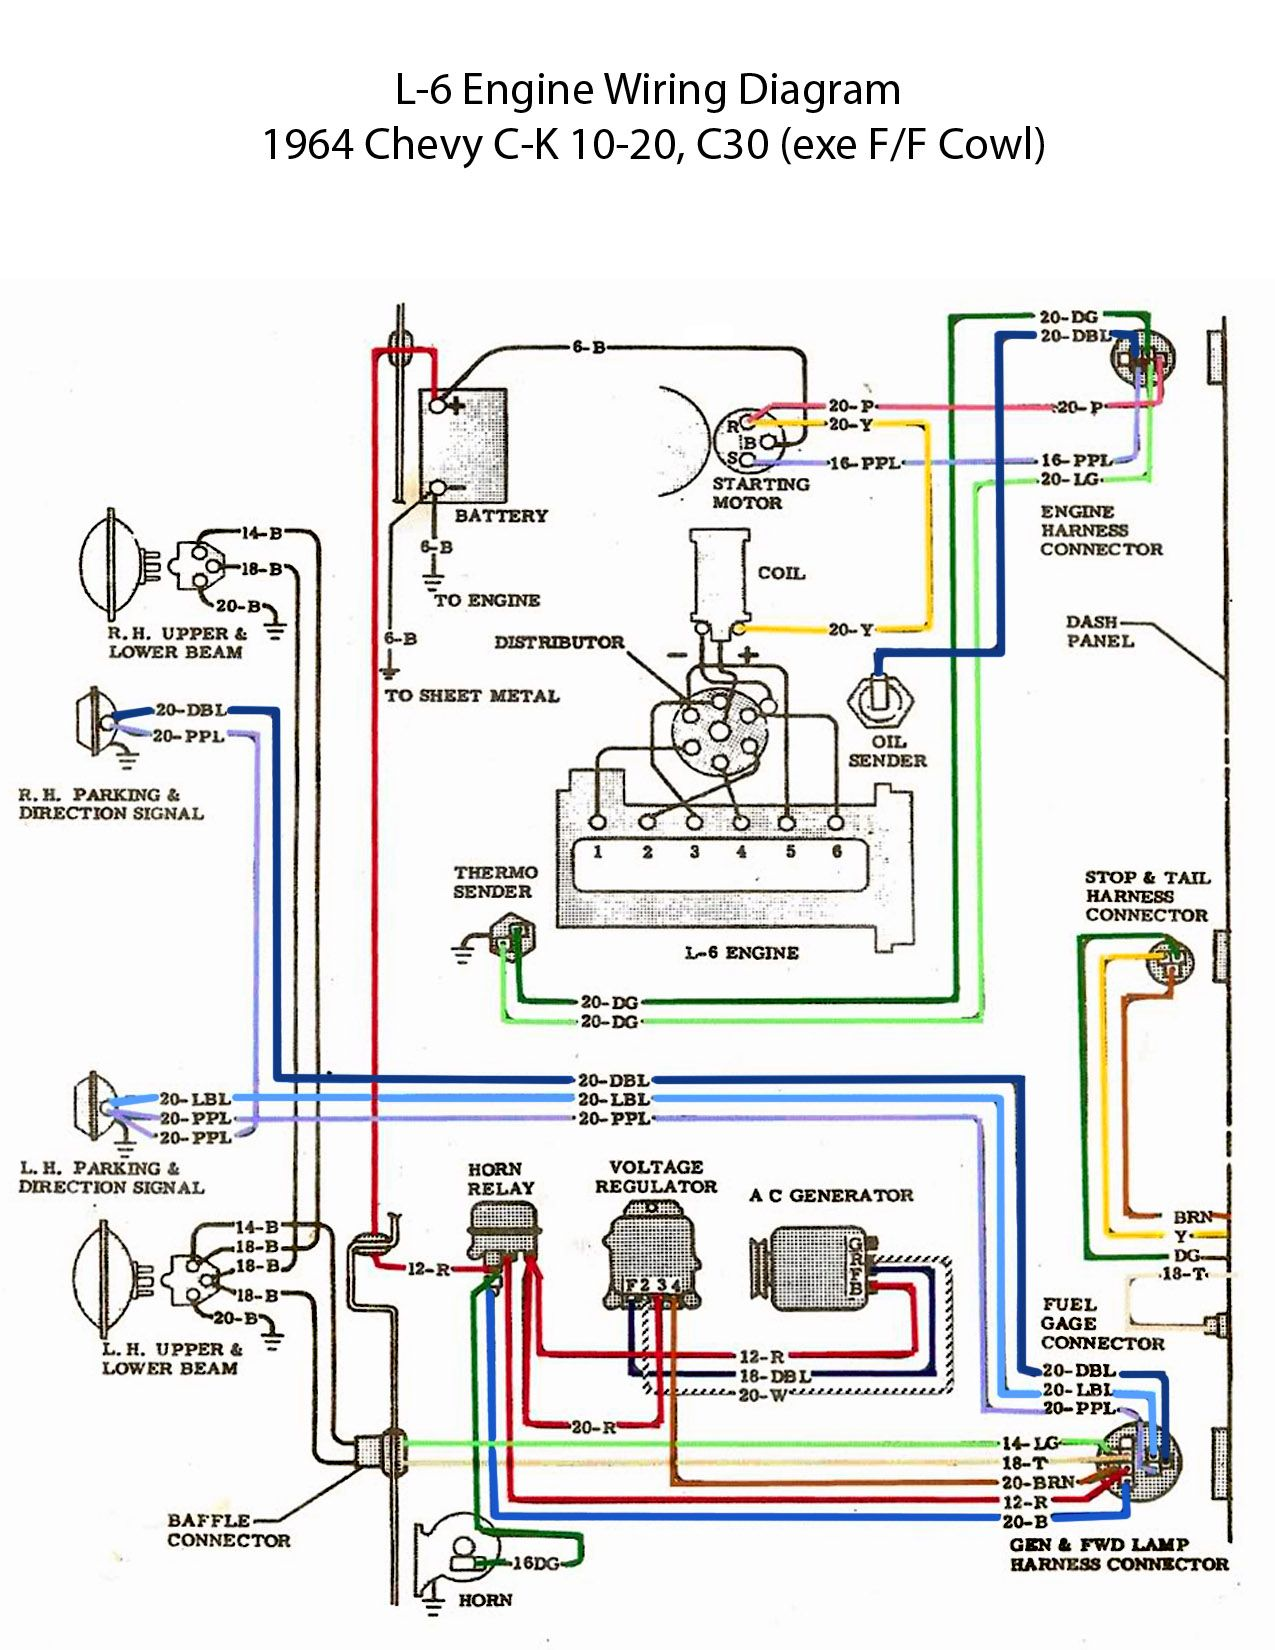 electric l 6 engine wiring diagram 60s chevy c10 wiring rh pinterest com GMC Envoy Engine Diagram 4.2L Chevy Engine